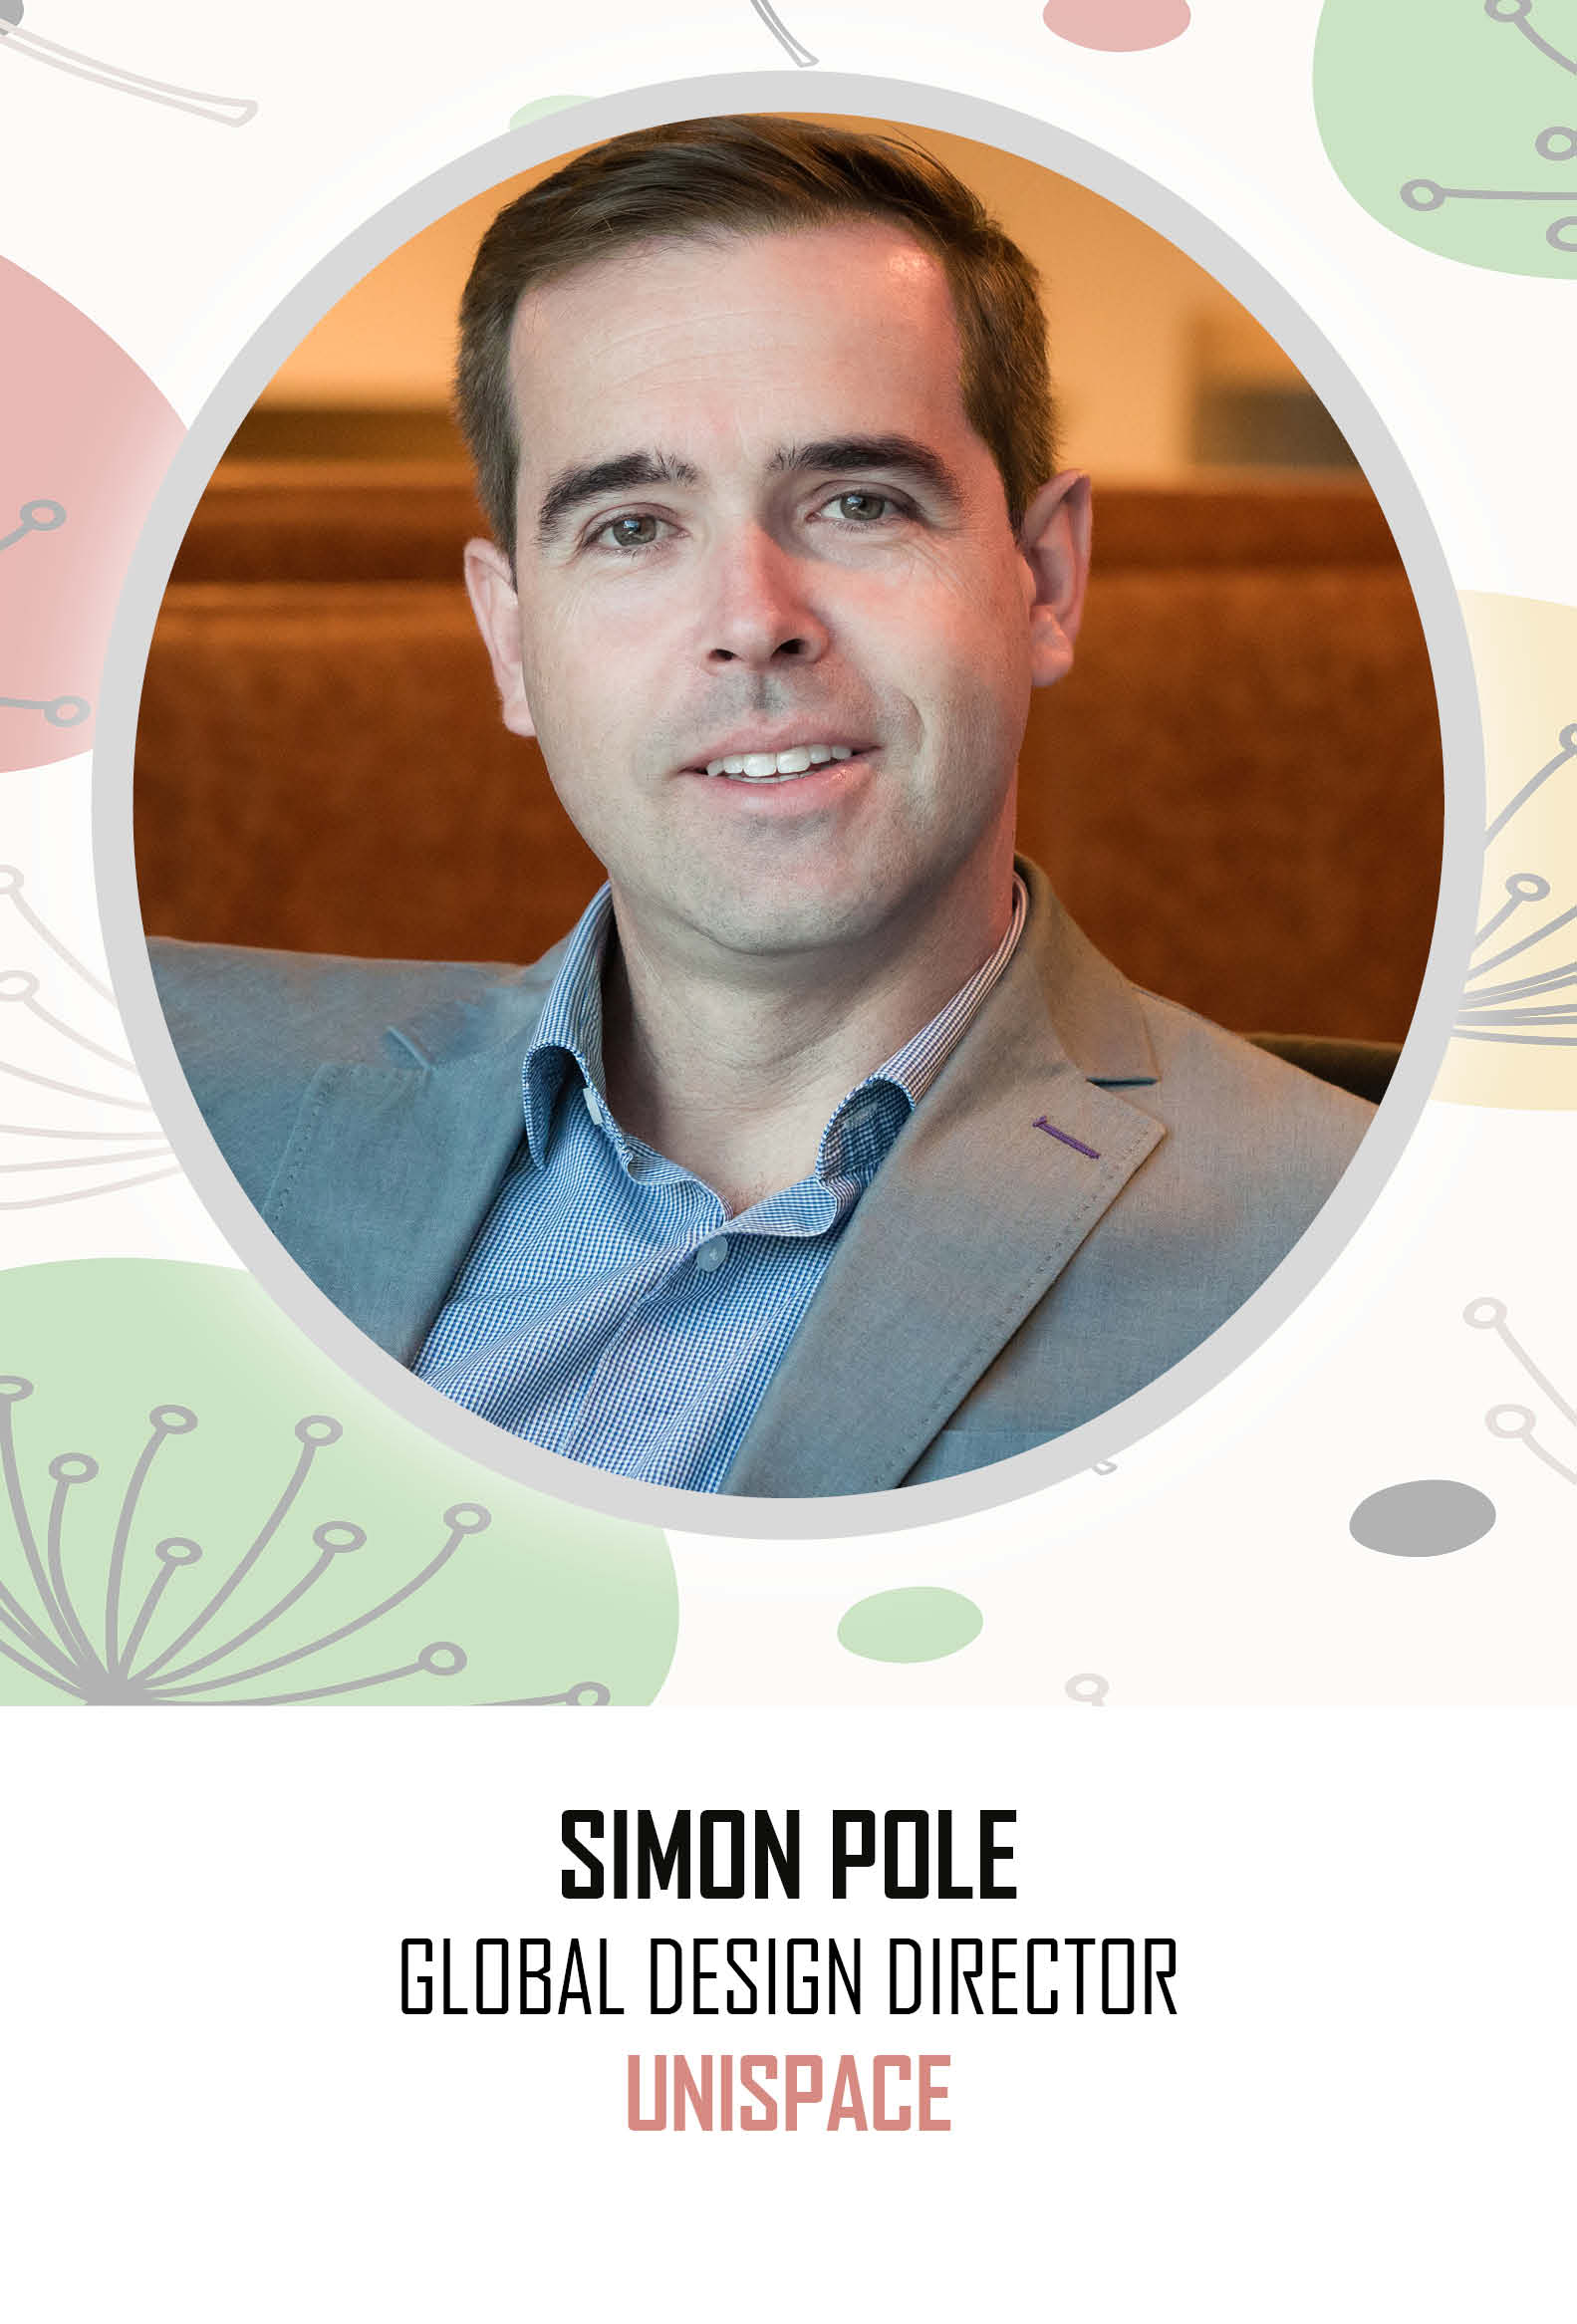 simon pole 11